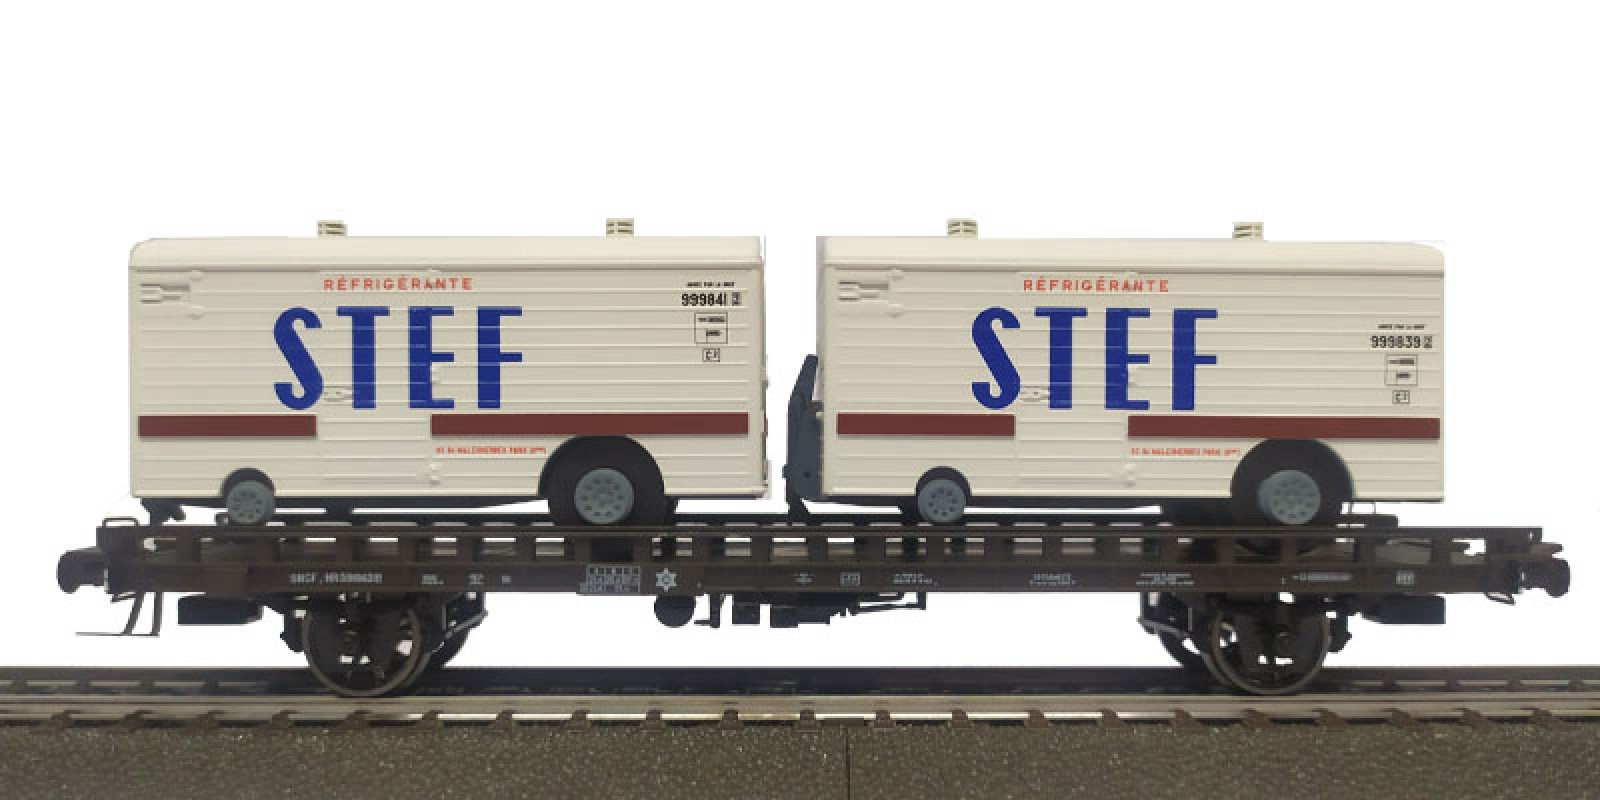 REWB636 Double carrier wagon loaded with refrigerated trailer of the SNCF